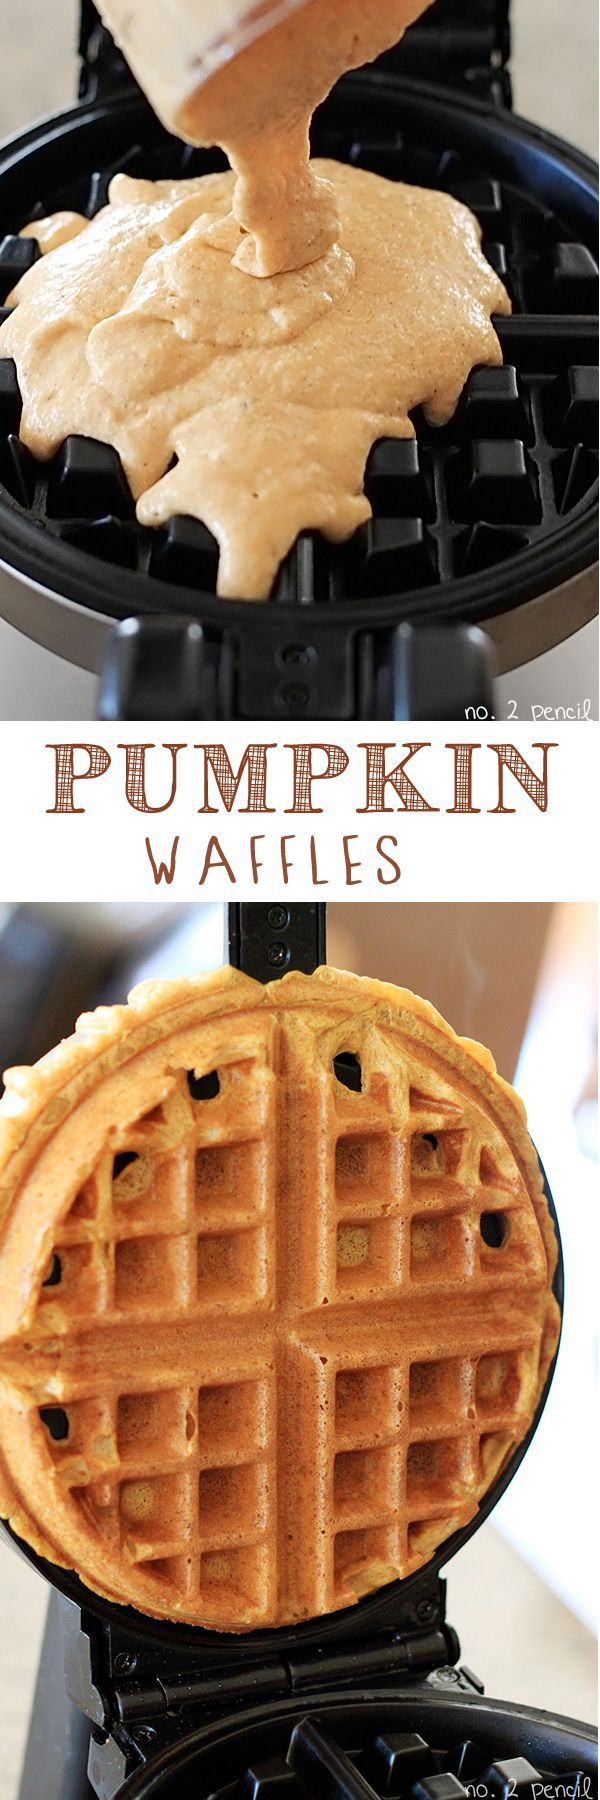 Pumpkin Waffles - crispy on the outside and tender and fluffy on the inside!  YUM